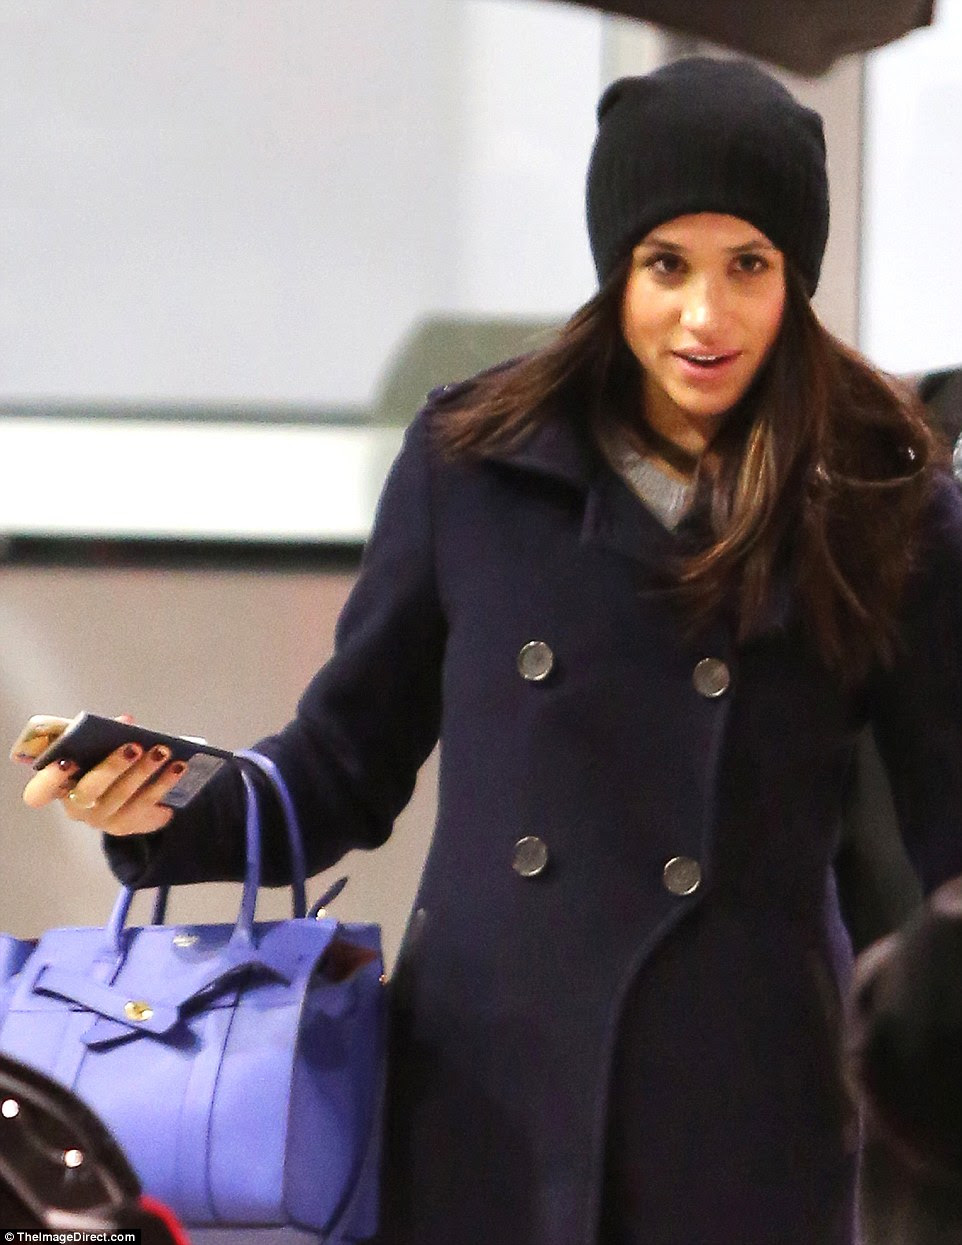 Meghan touched down in Toronto after spending a romantic week in London with boyfriend Harry